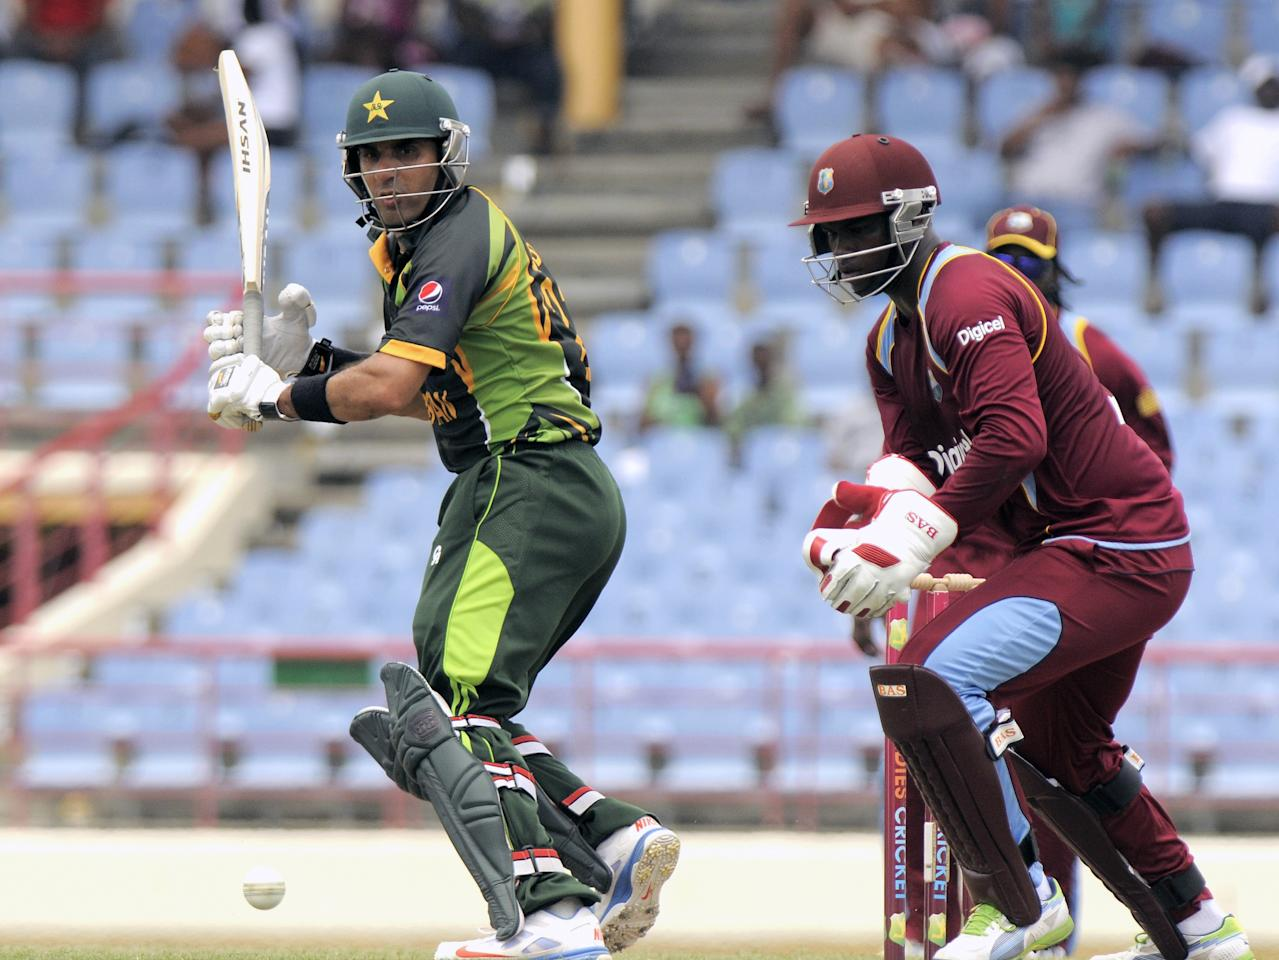 Pakistan batsman Misbah-ul-Haq cuts on his way to a half century during the 3rd ODI West Indies v Pakistan at Beausejour Cricket Ground in Gros Islet on July 19, 2013. The wicket-keeper is Johnson Charles. Pakistan made 229-6 off their 50 overs in the third one-day international against the West Indies.    AFP PHOTO/Randy Brooks        (Photo credit should read RANDY BROOKS/AFP/Getty Images)